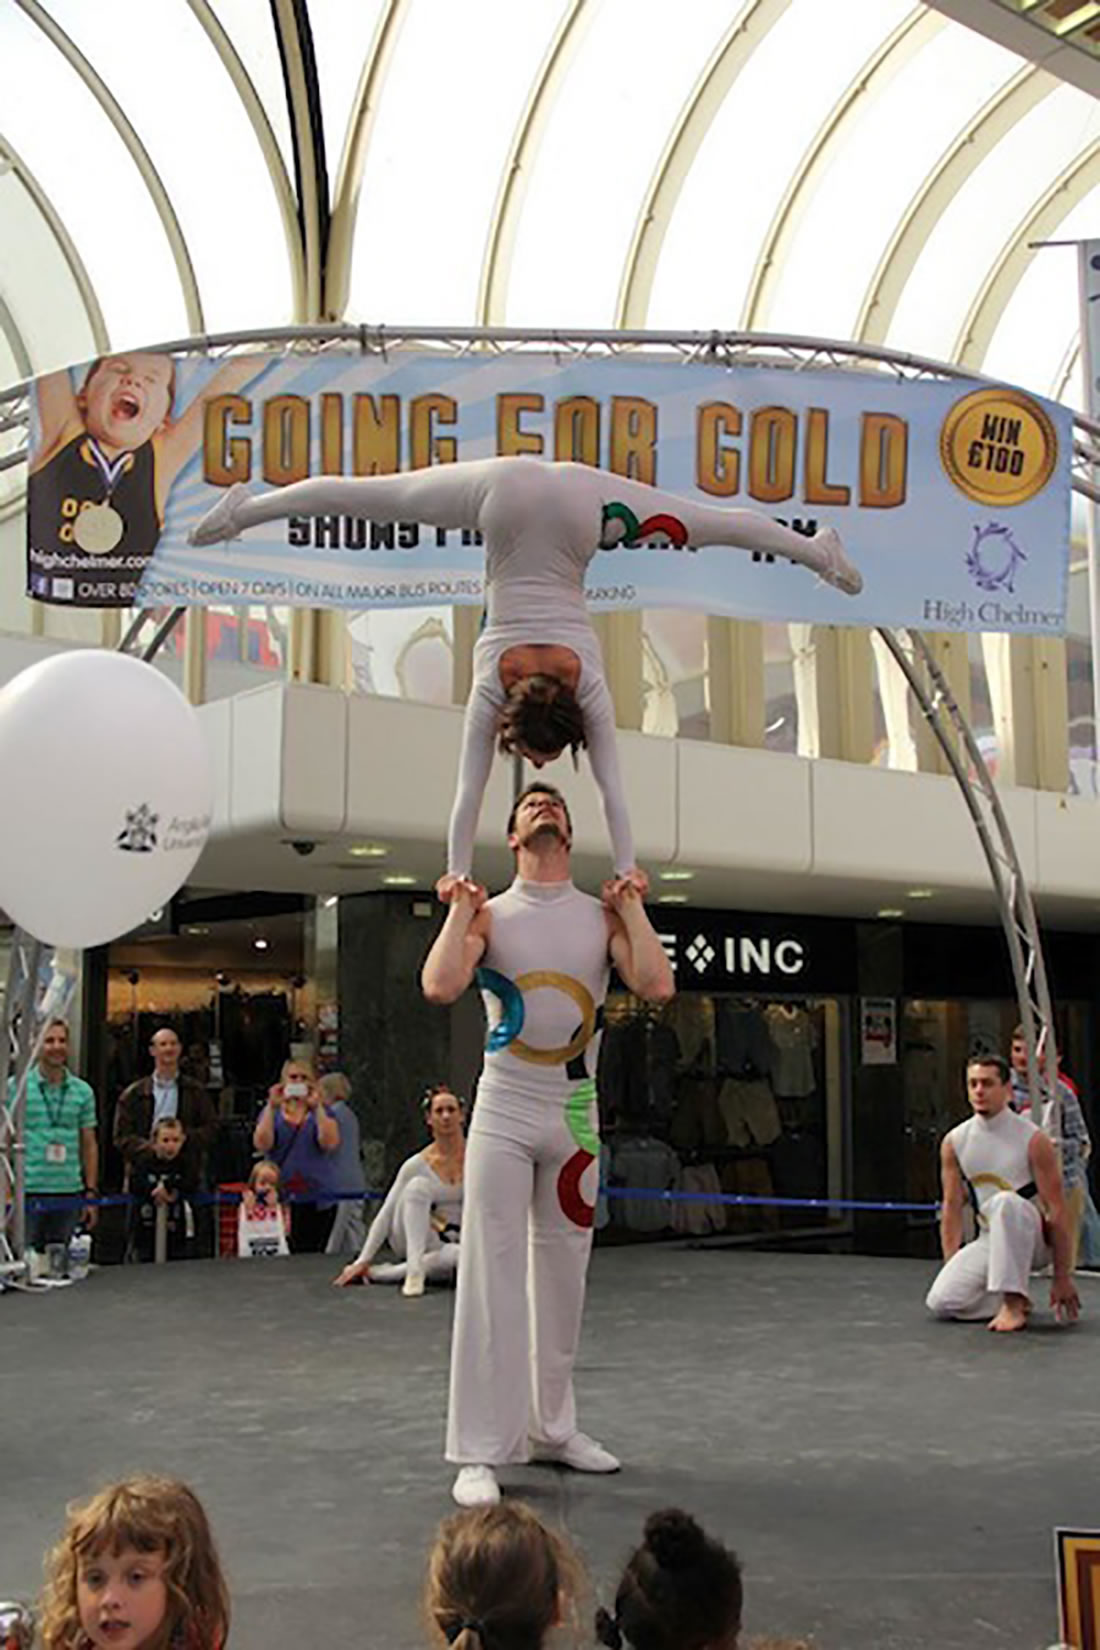 Groundbased Shows - Acrobats Gallery - Olympic event Chelmsford